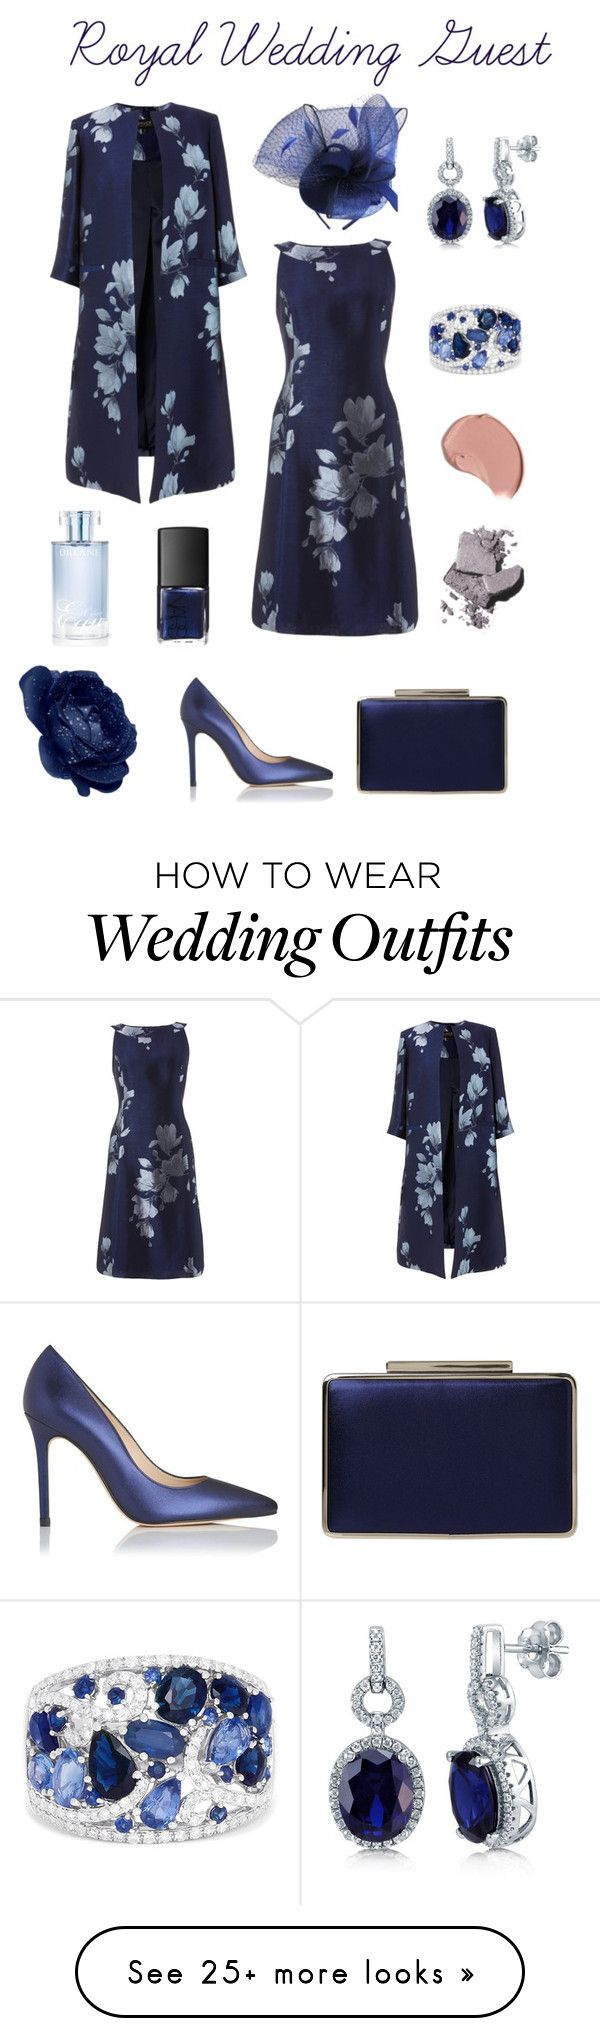 """Royal Wedding Guest"" by marnie1979 on Polyvore featuring L.K.Bennett, Effy Jewelry, BERRICLE, Bobbi Brown Cosmetics, Burberry, NARS Cosmetics and Orlane"